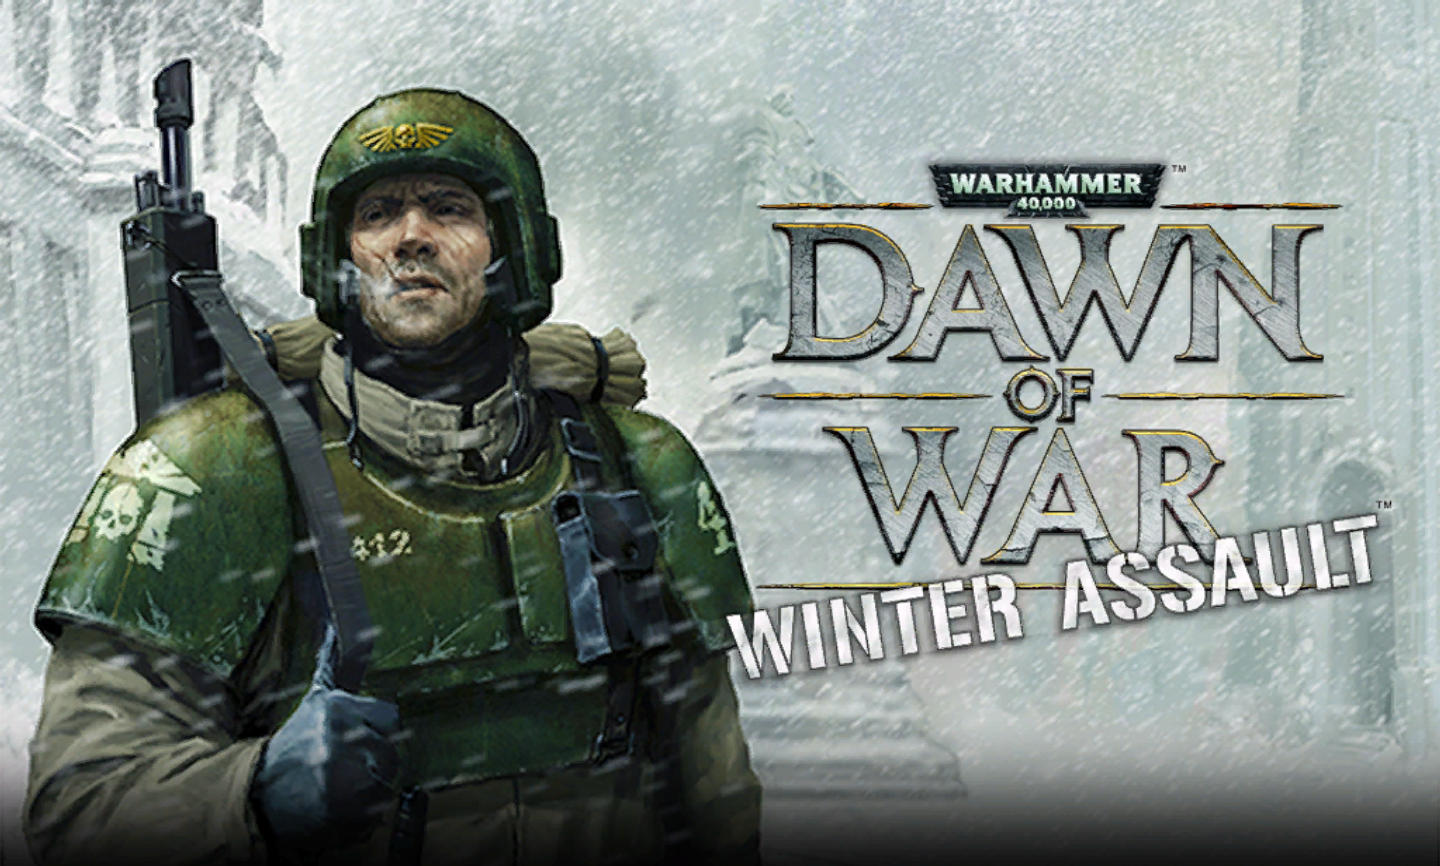 Winter Assault title screen